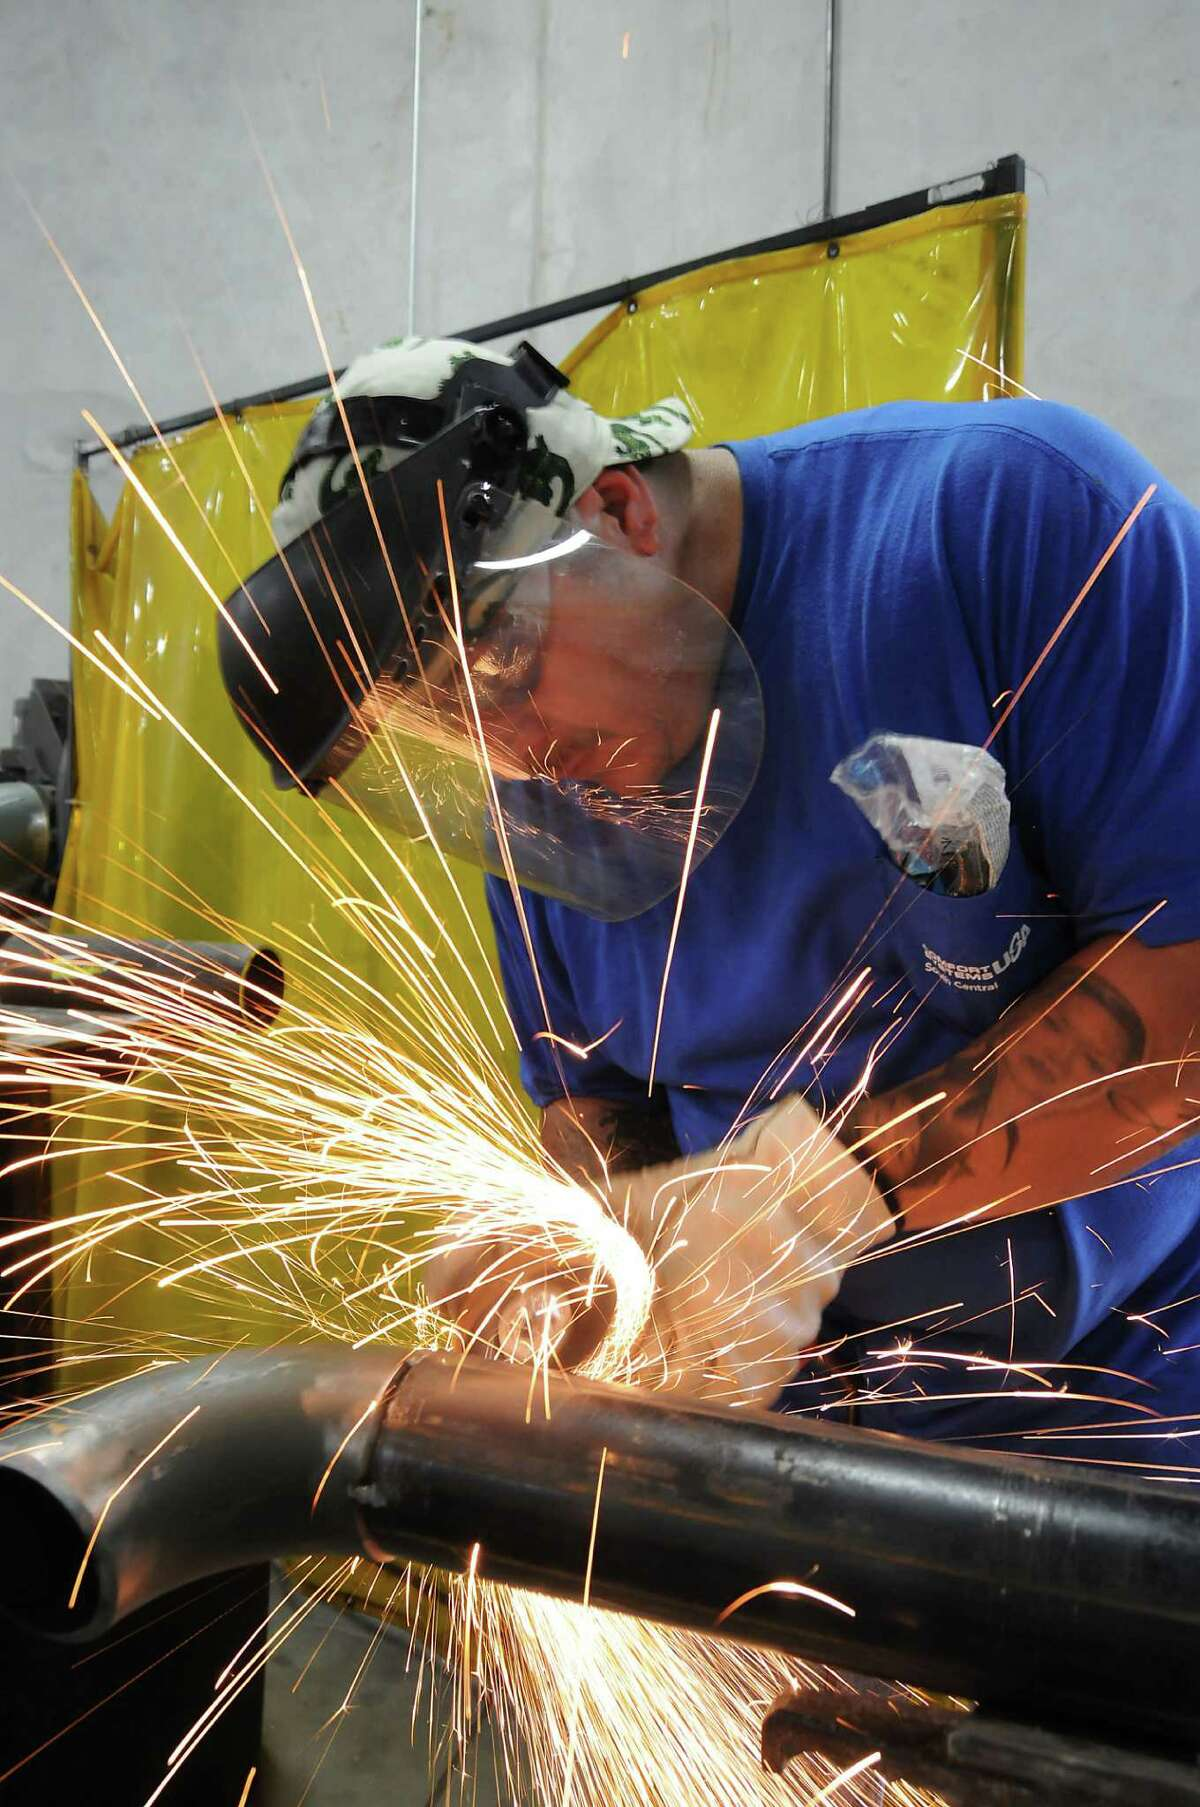 Julio Robles fabricates pipes at Comfort Systems, which plans an online training program.